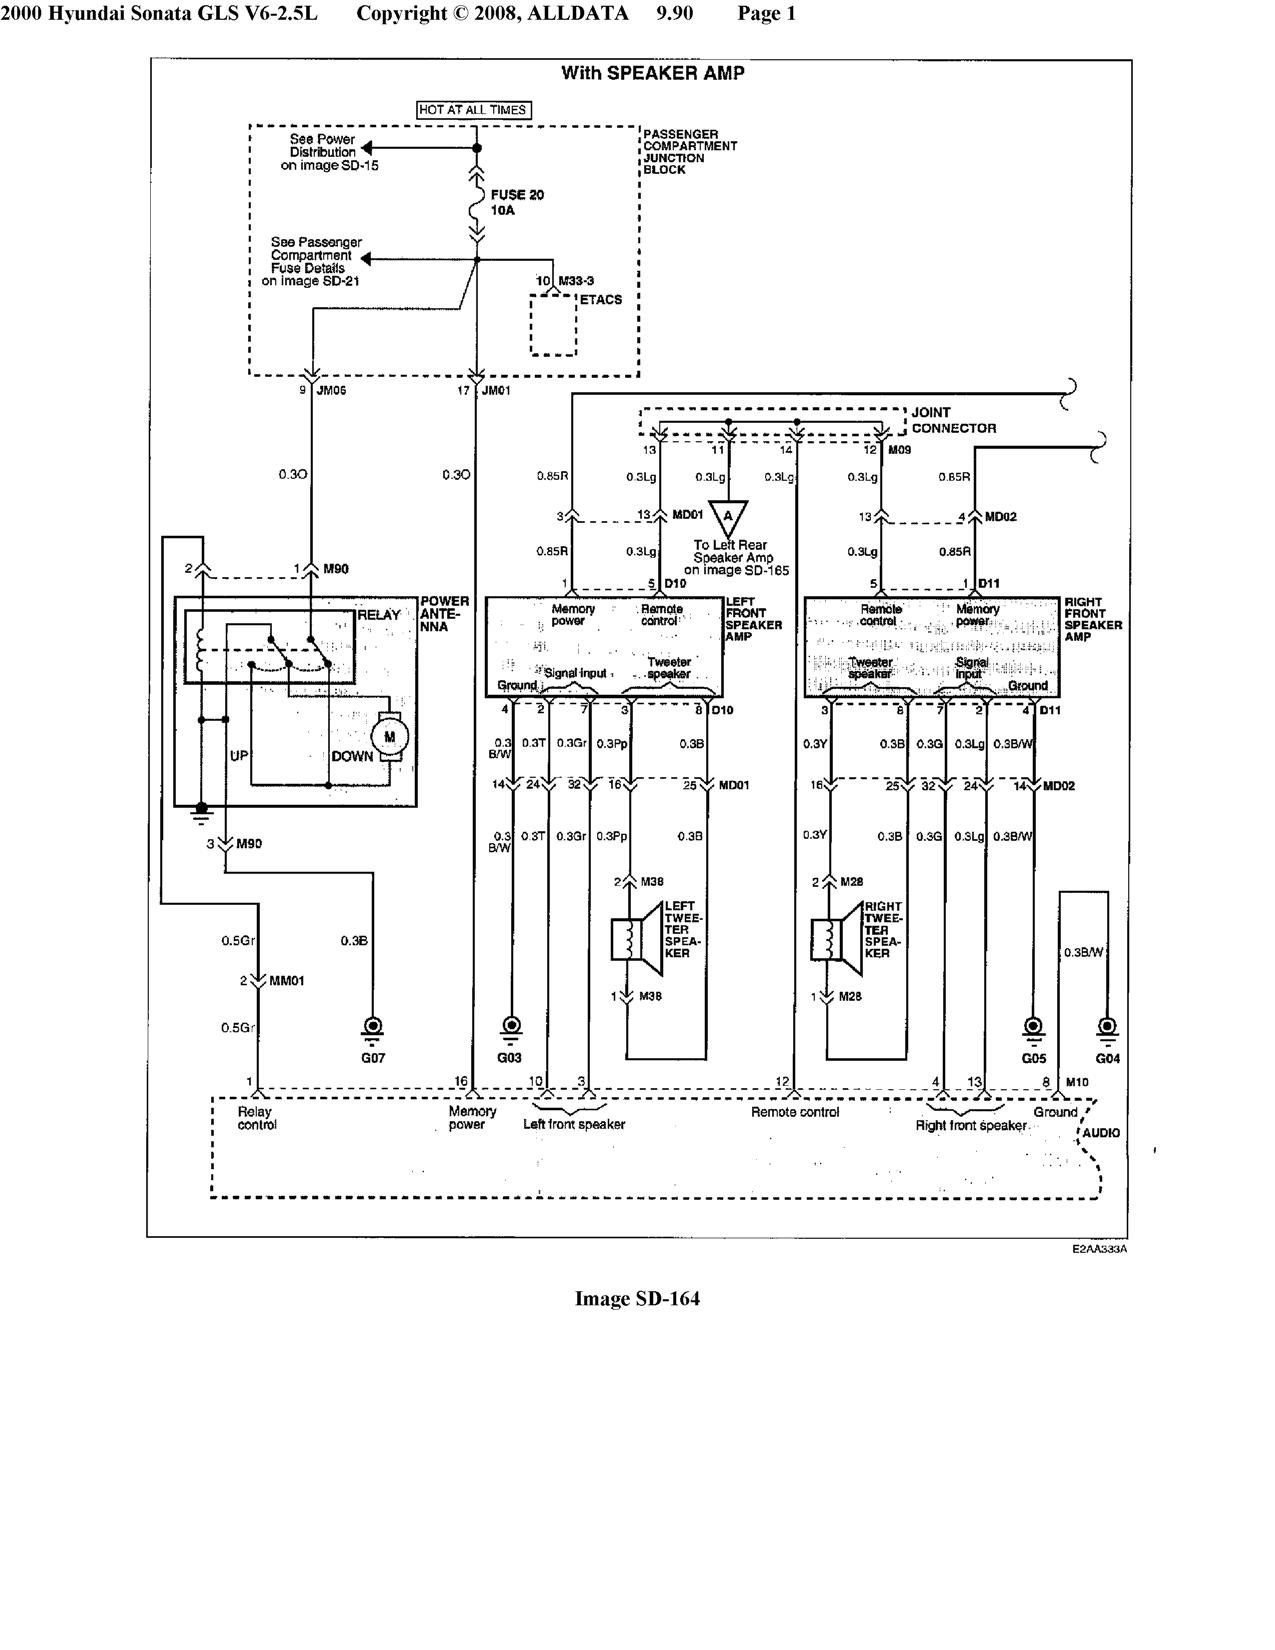 DIAGRAM] 2003 Hyundai Tiburon Radio Wiring Diagram FULL Version HD Quality Wiring  Diagram - CARRYBOYPHIL.K-DANSE.FRK-danse.fr